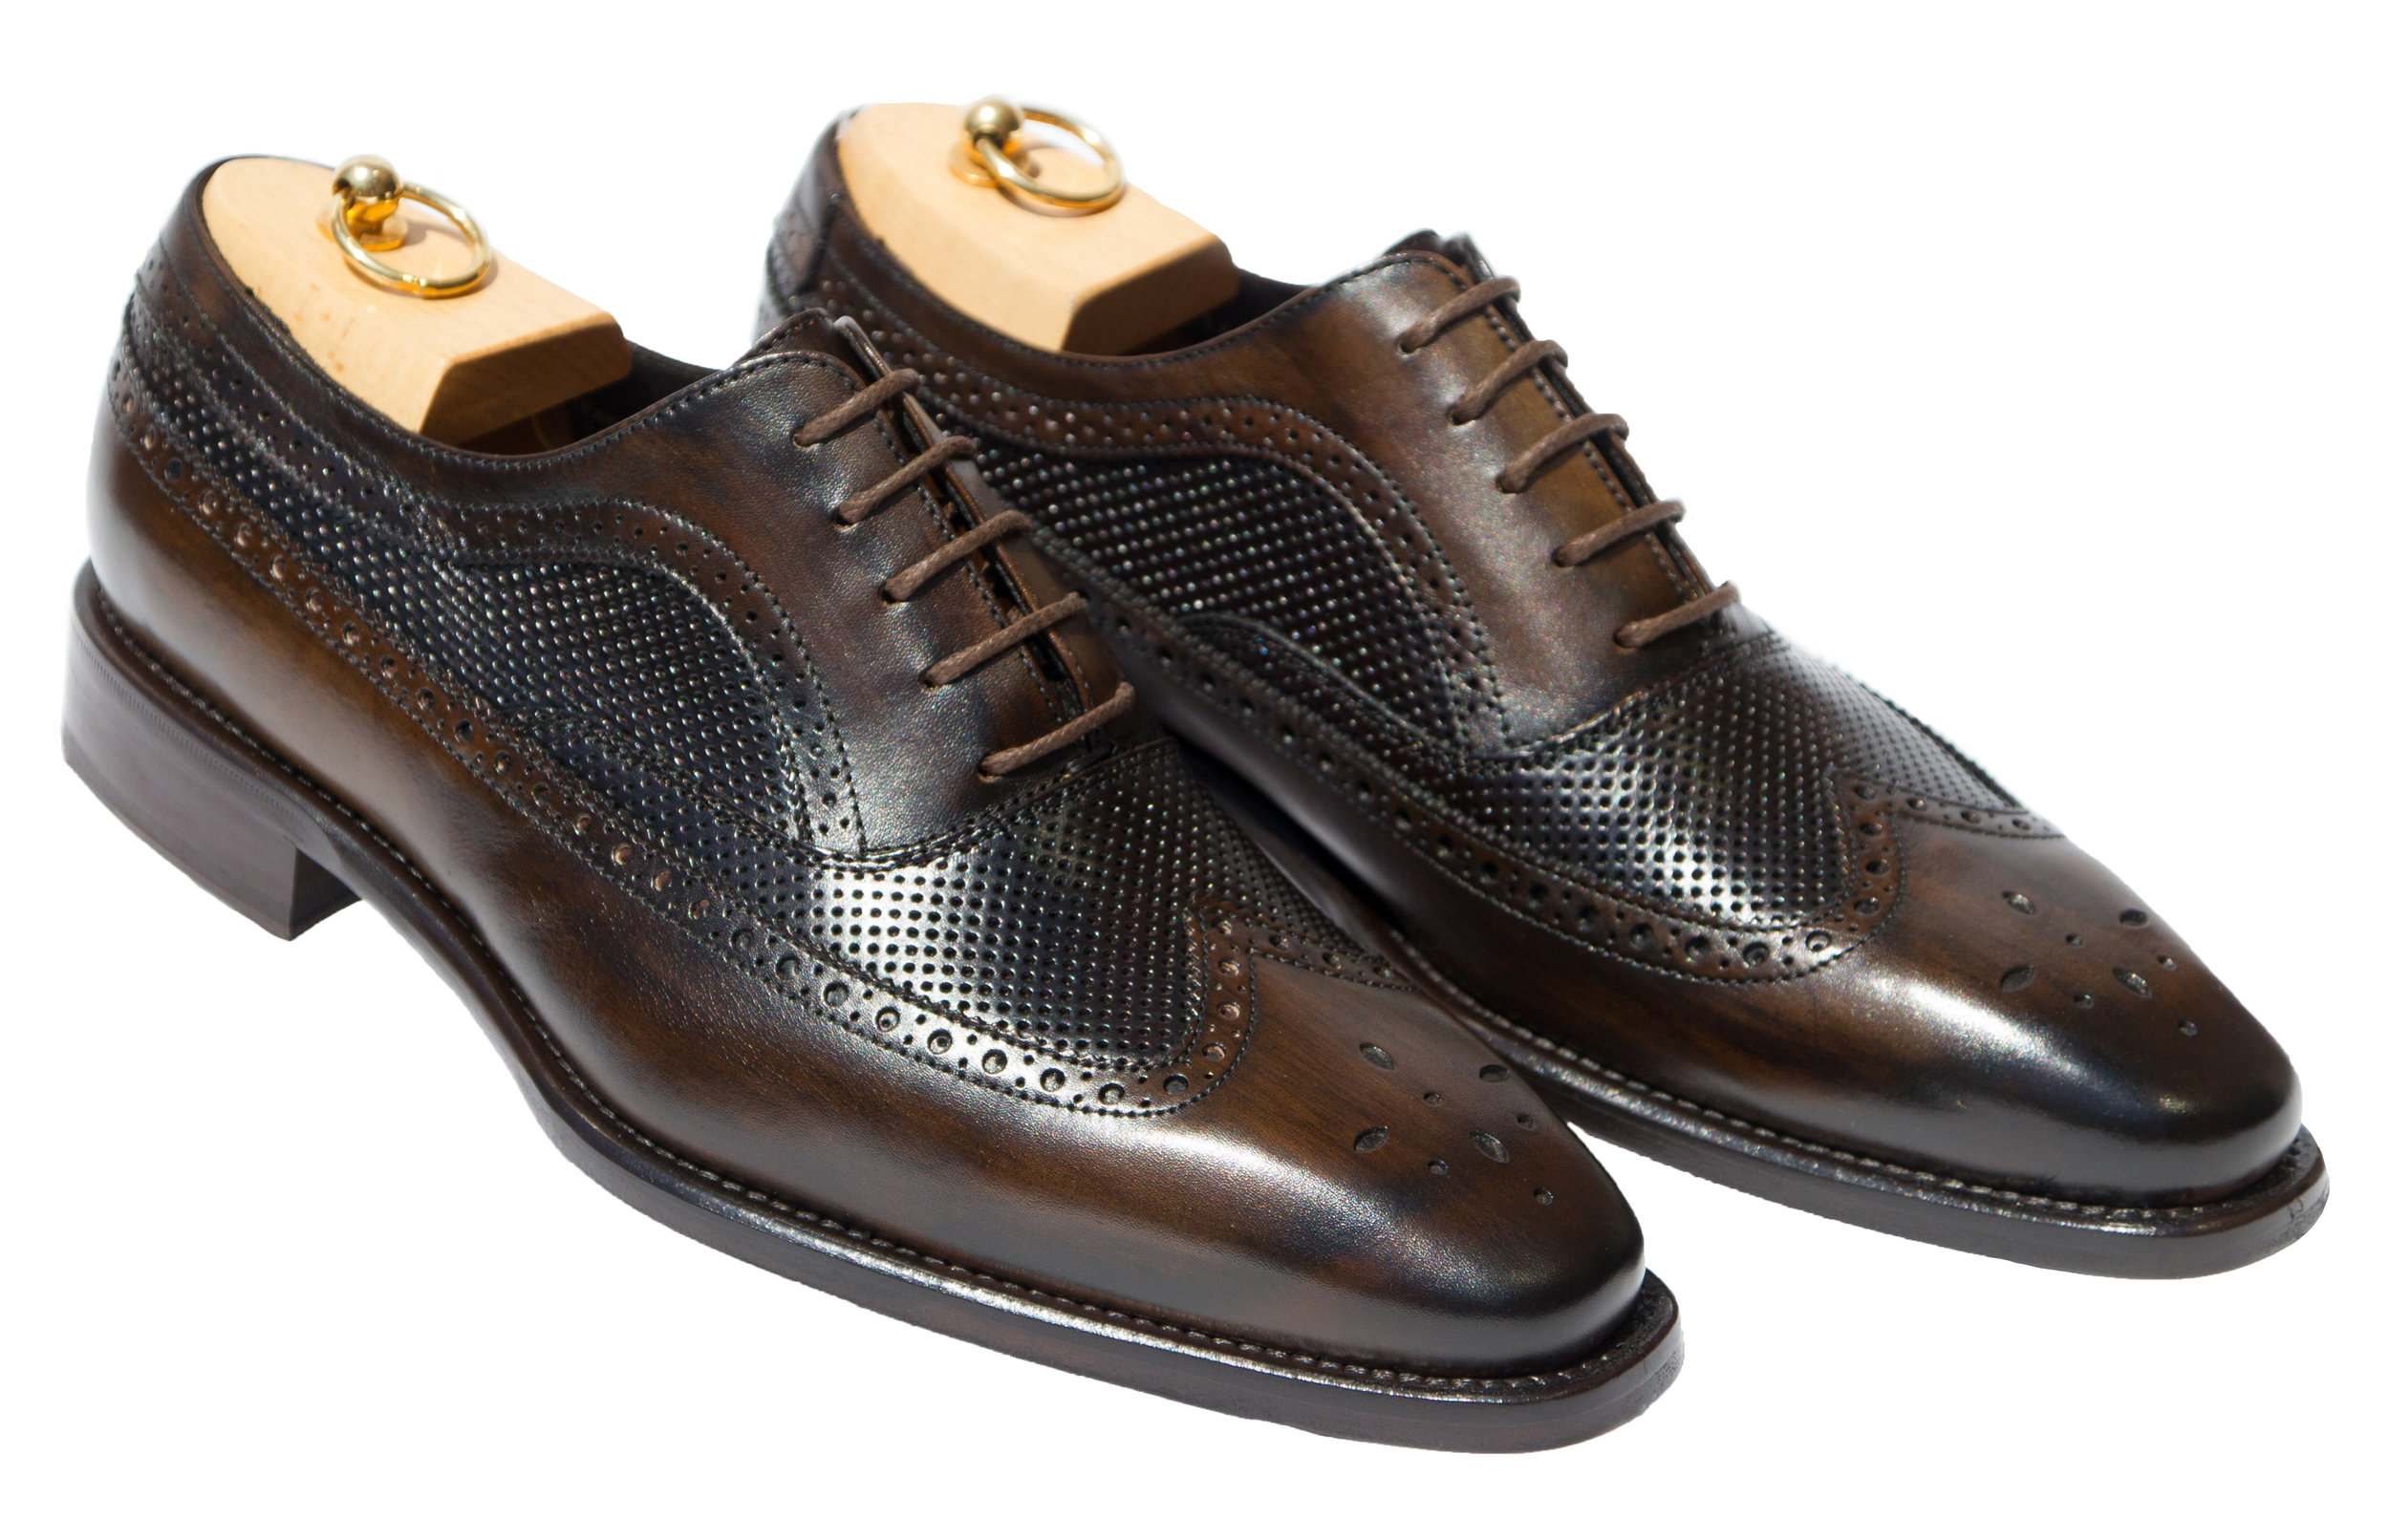 Style # H165: Dark Brown  Handpainted Cayenne Calf Wingtip Balmoral  Sizes available: 7 to 14 US, including half sizes; 15 to 18, full sizes only